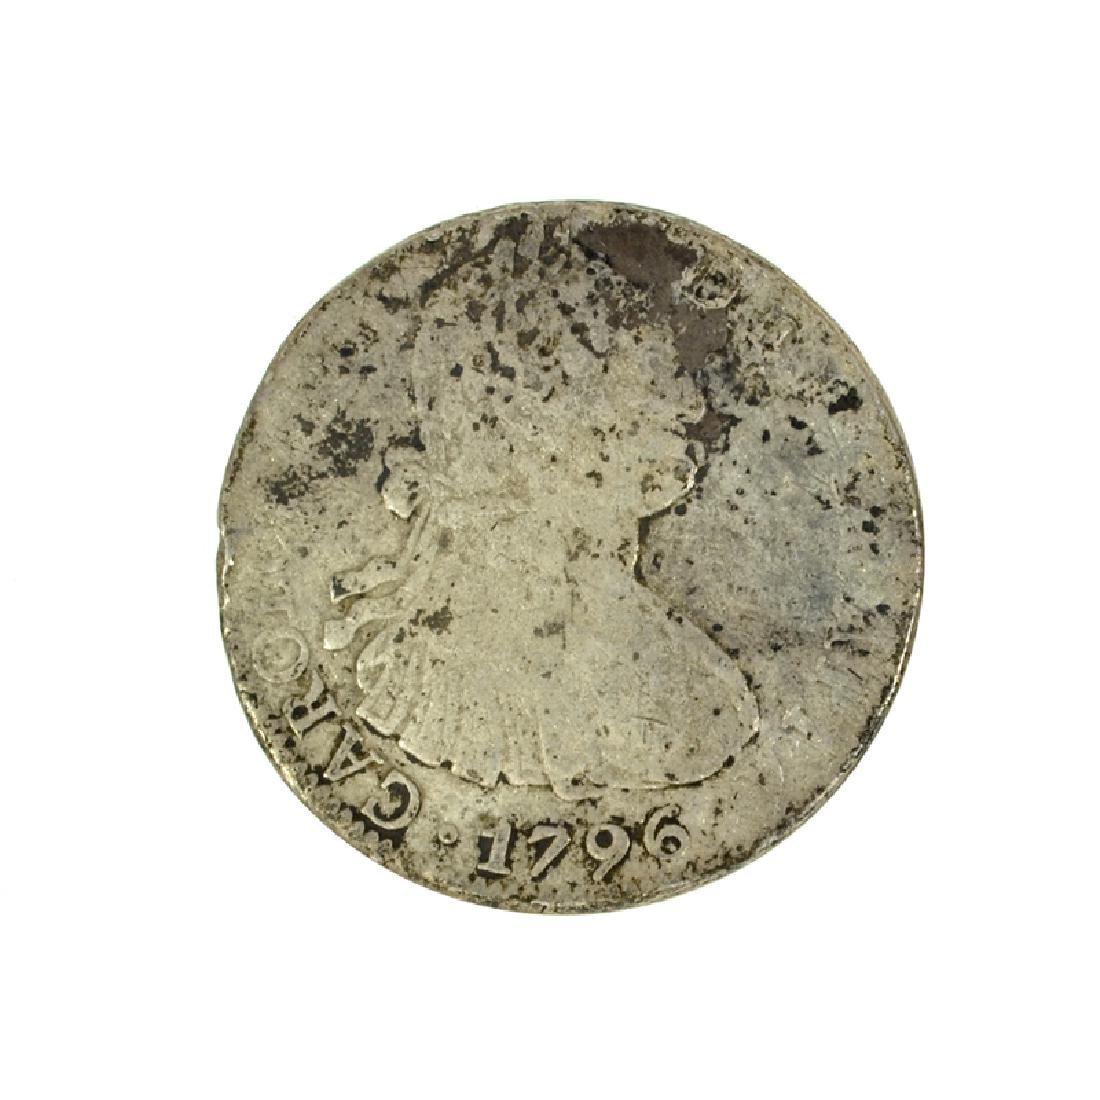 1796 Eight Reales American First Silver Dollar Coin